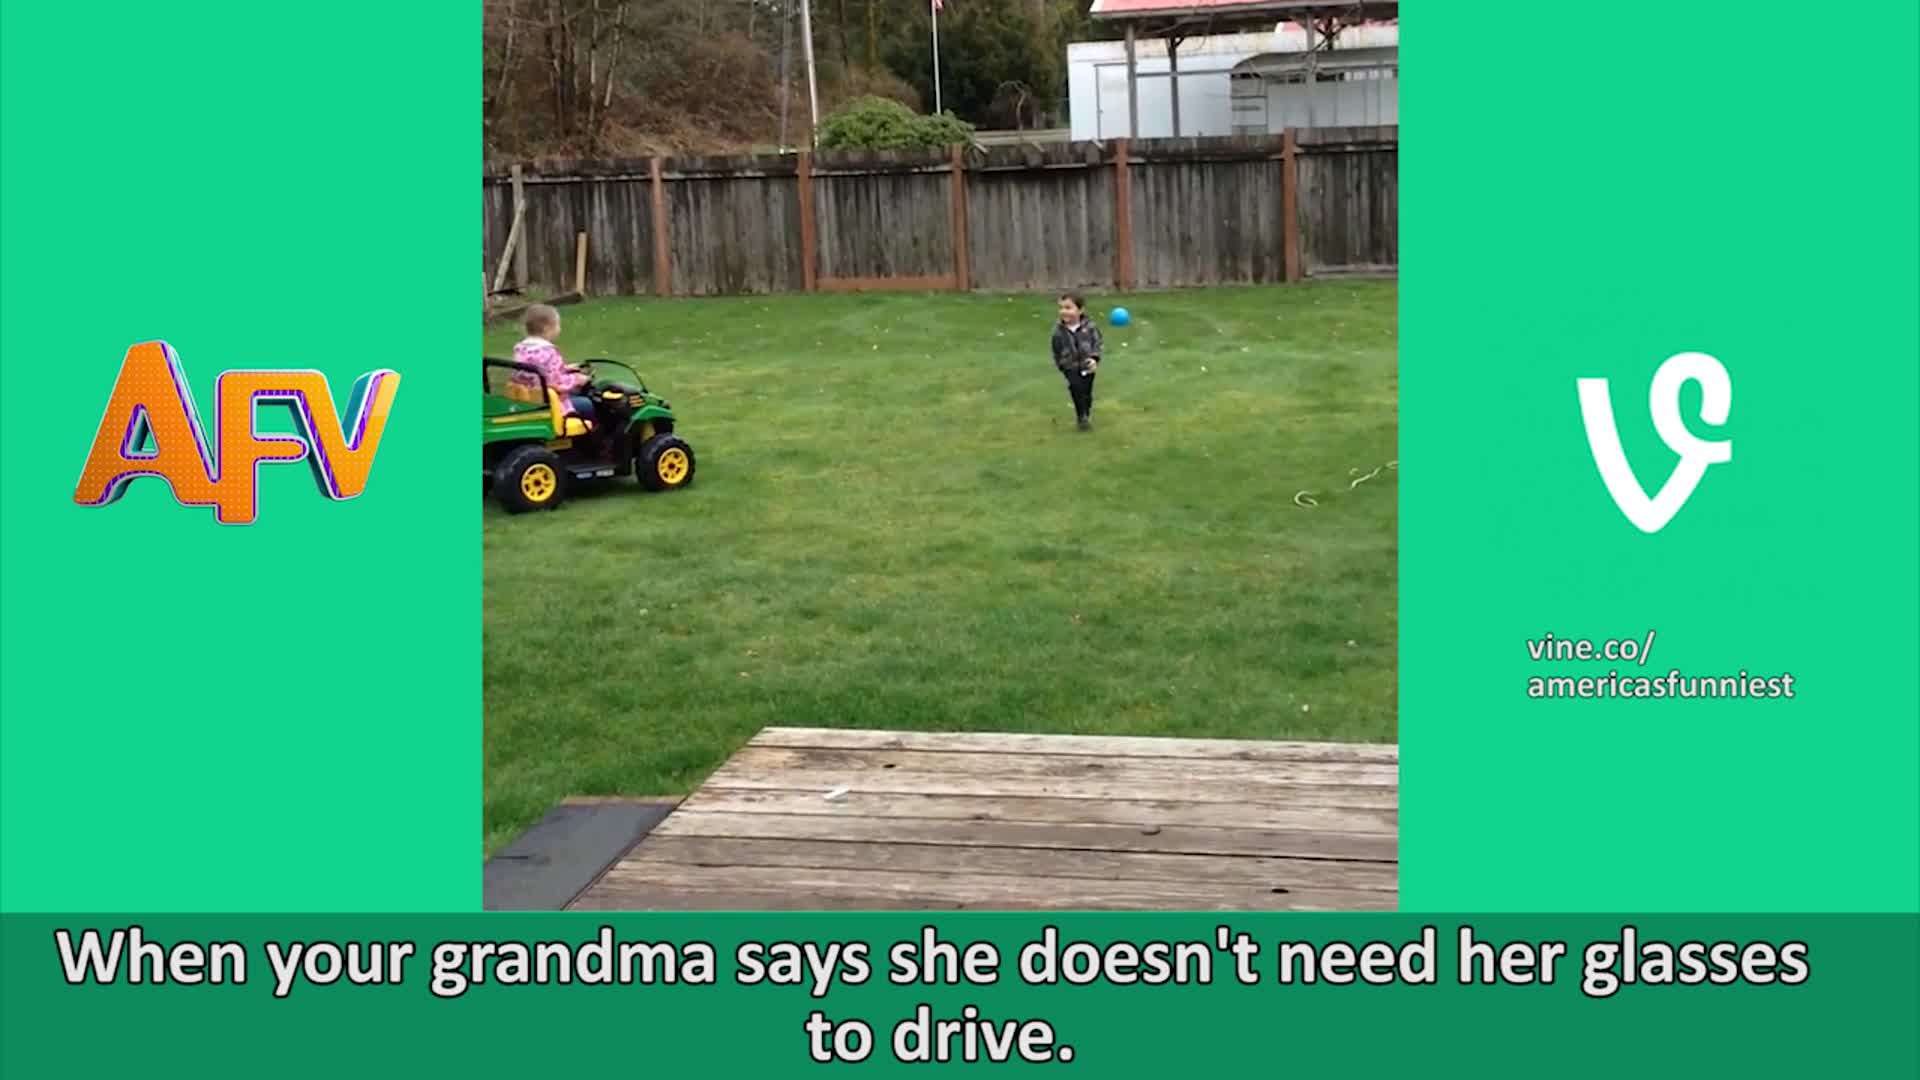 the best of january vines on afv